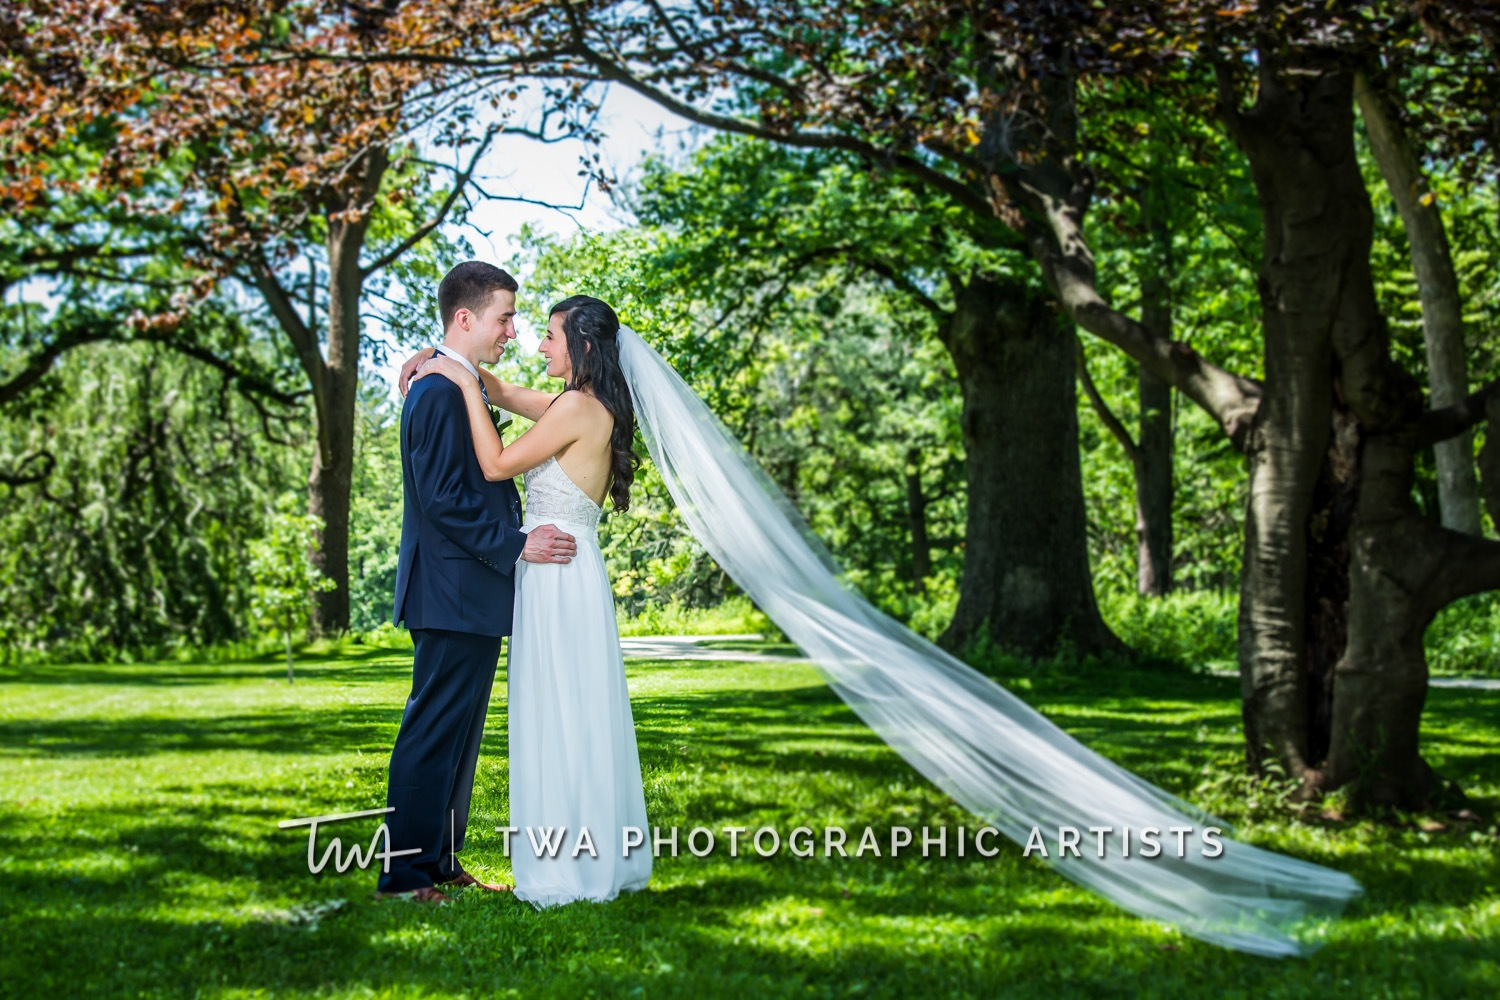 Chicago-Wedding-Photographer-TWA-Photographic-Artists-Private-Residence_Matar_Peters_SG-0095